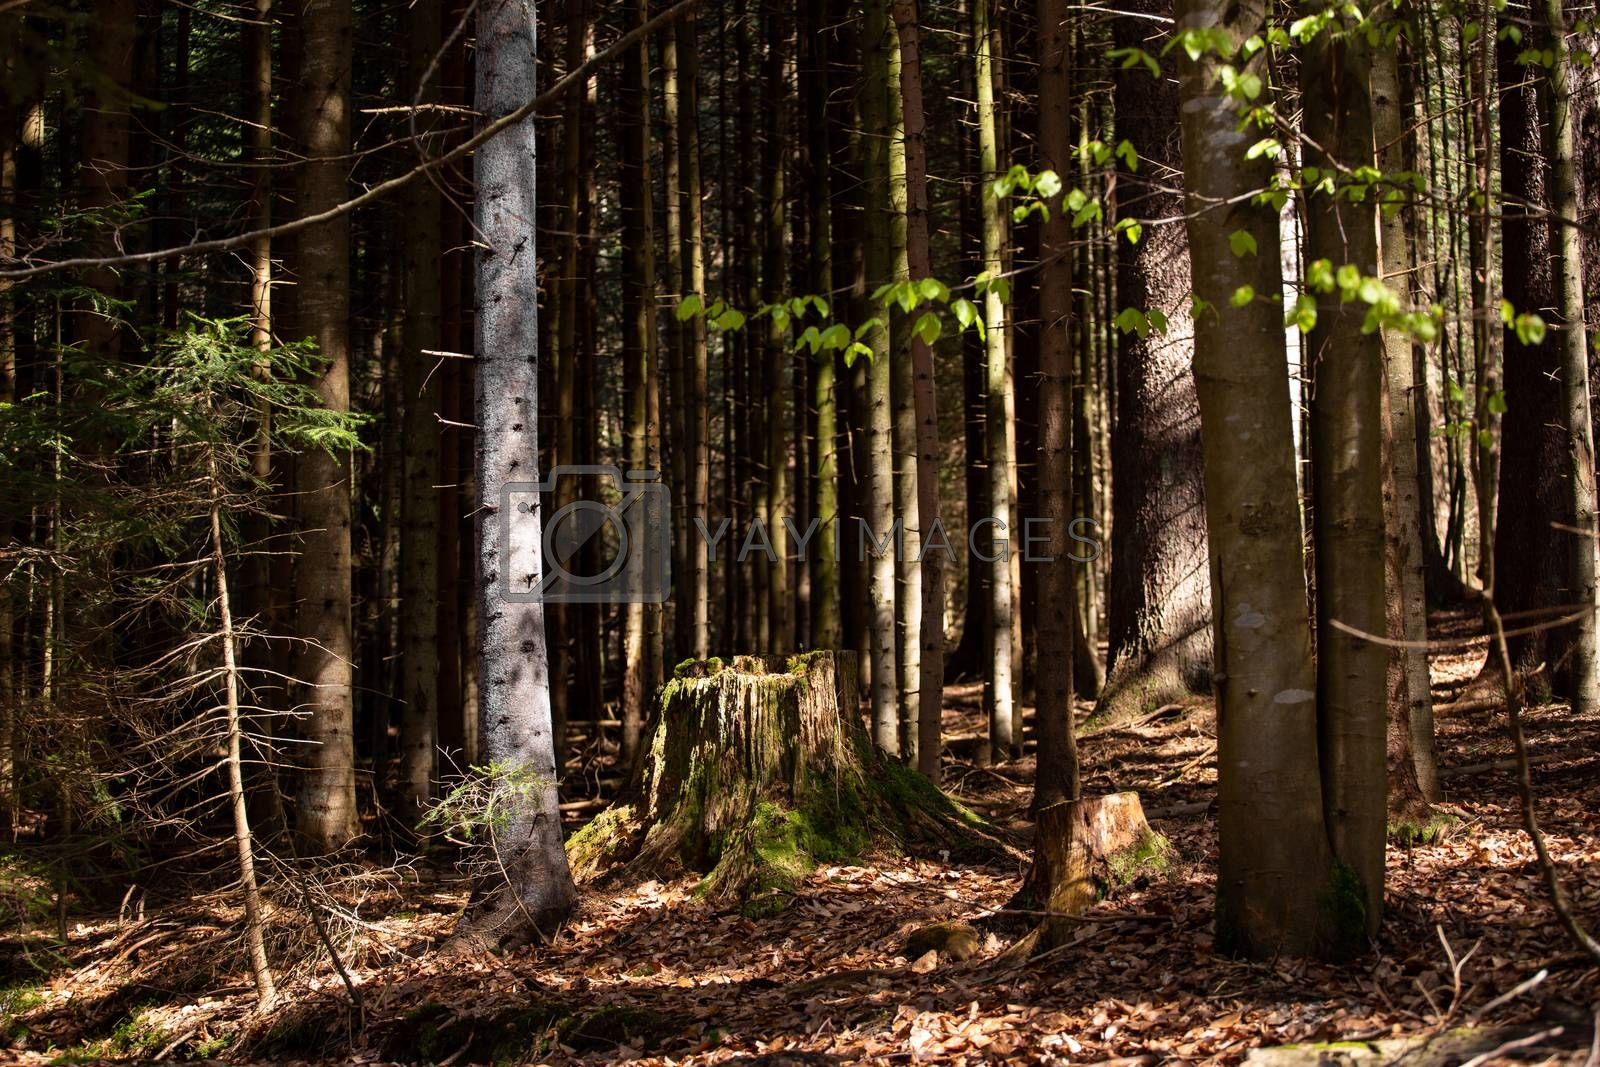 Impressions from the national park in Ludwigsthal Bavaria by Sandra Fotodesign